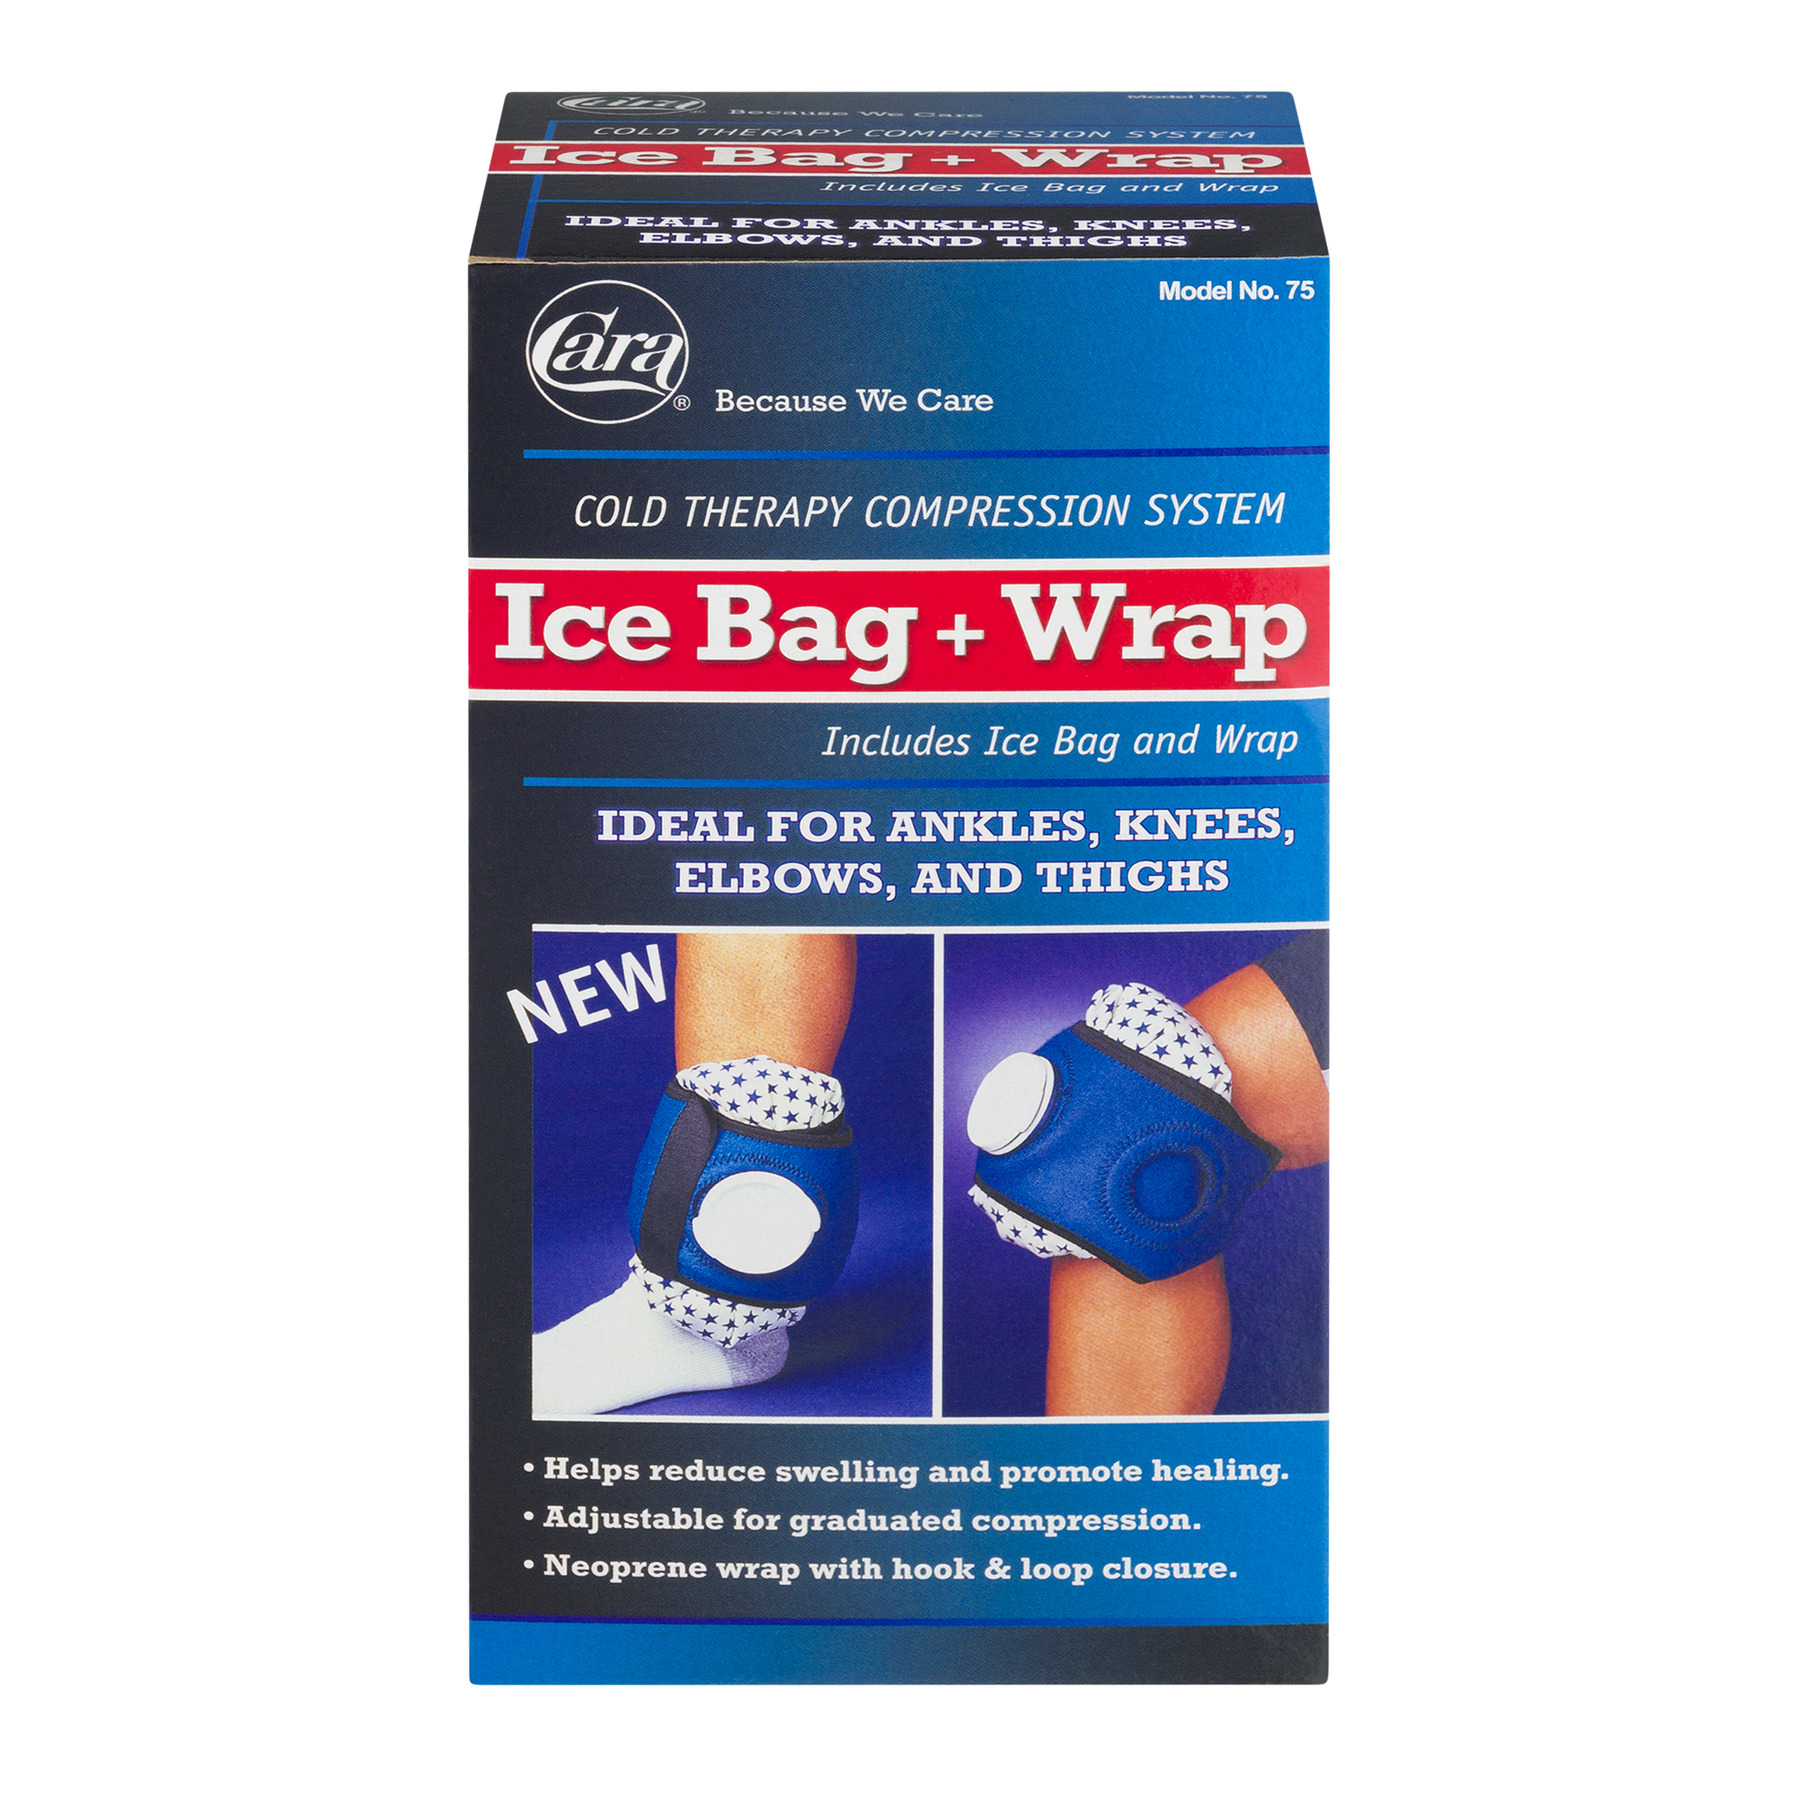 Cara Ice Bag + Wrap, 1.0 CT